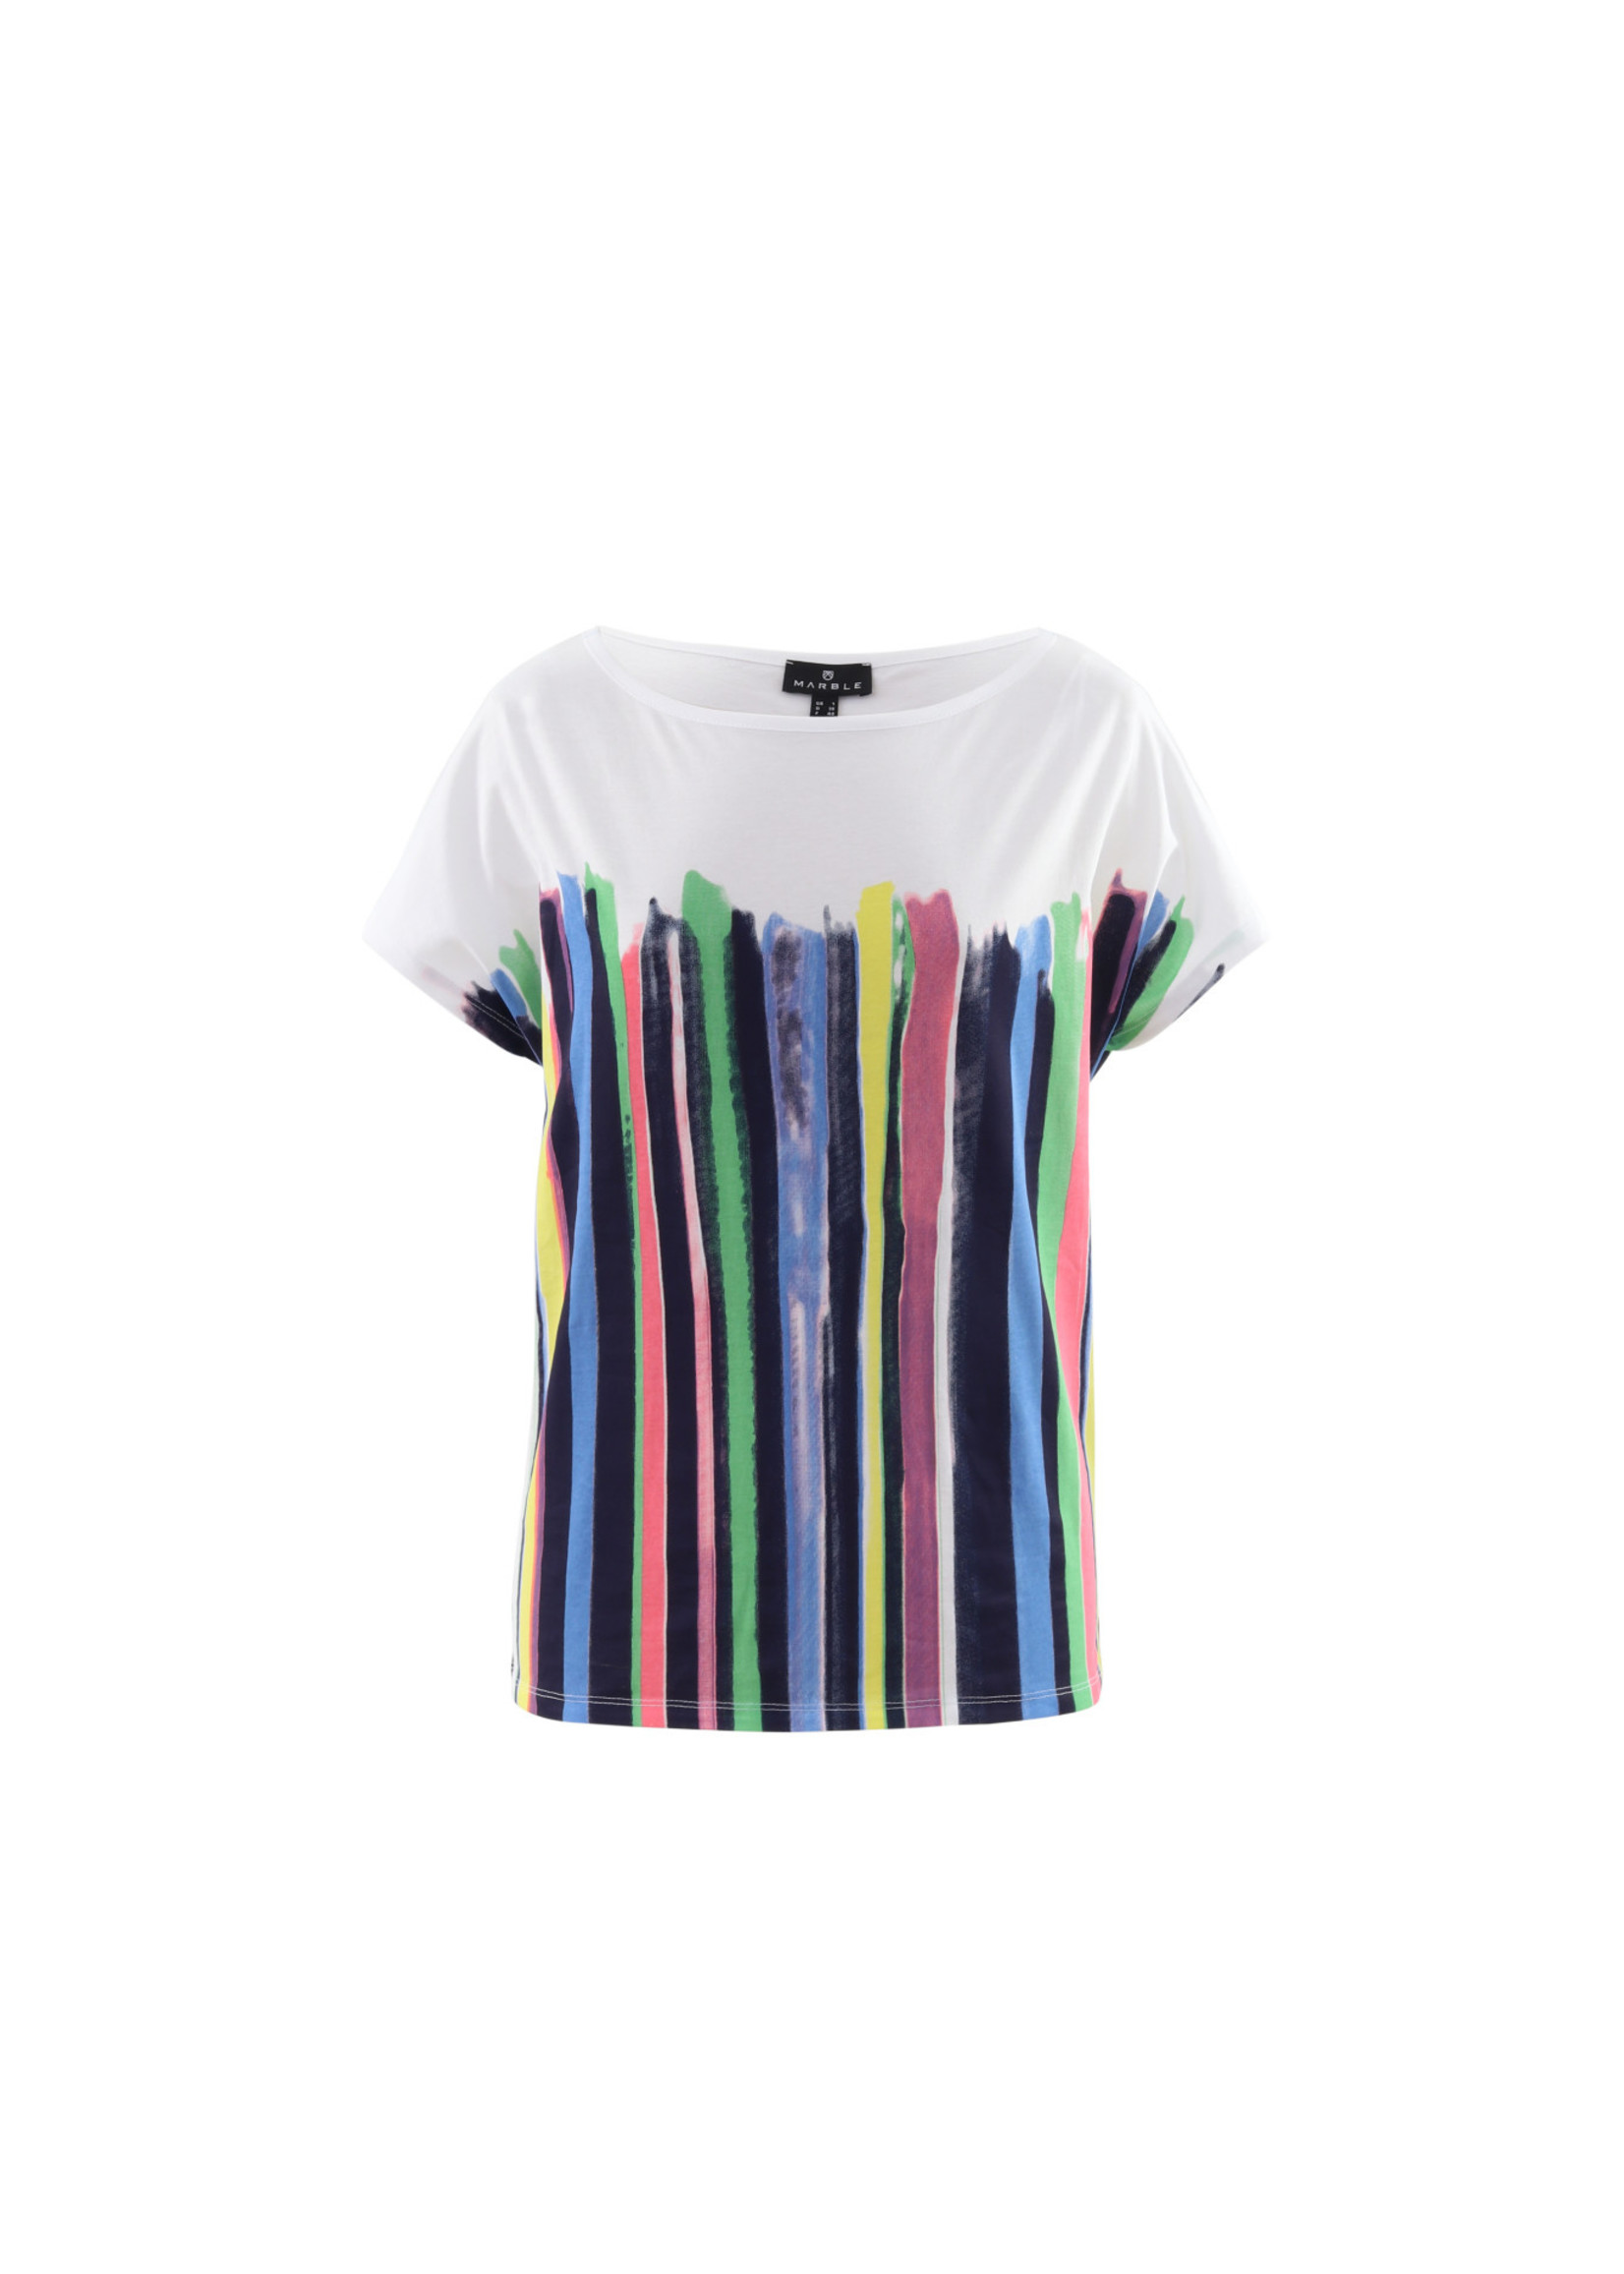 Marble Marble Top Cap Sleeve w/Coloured Stripes